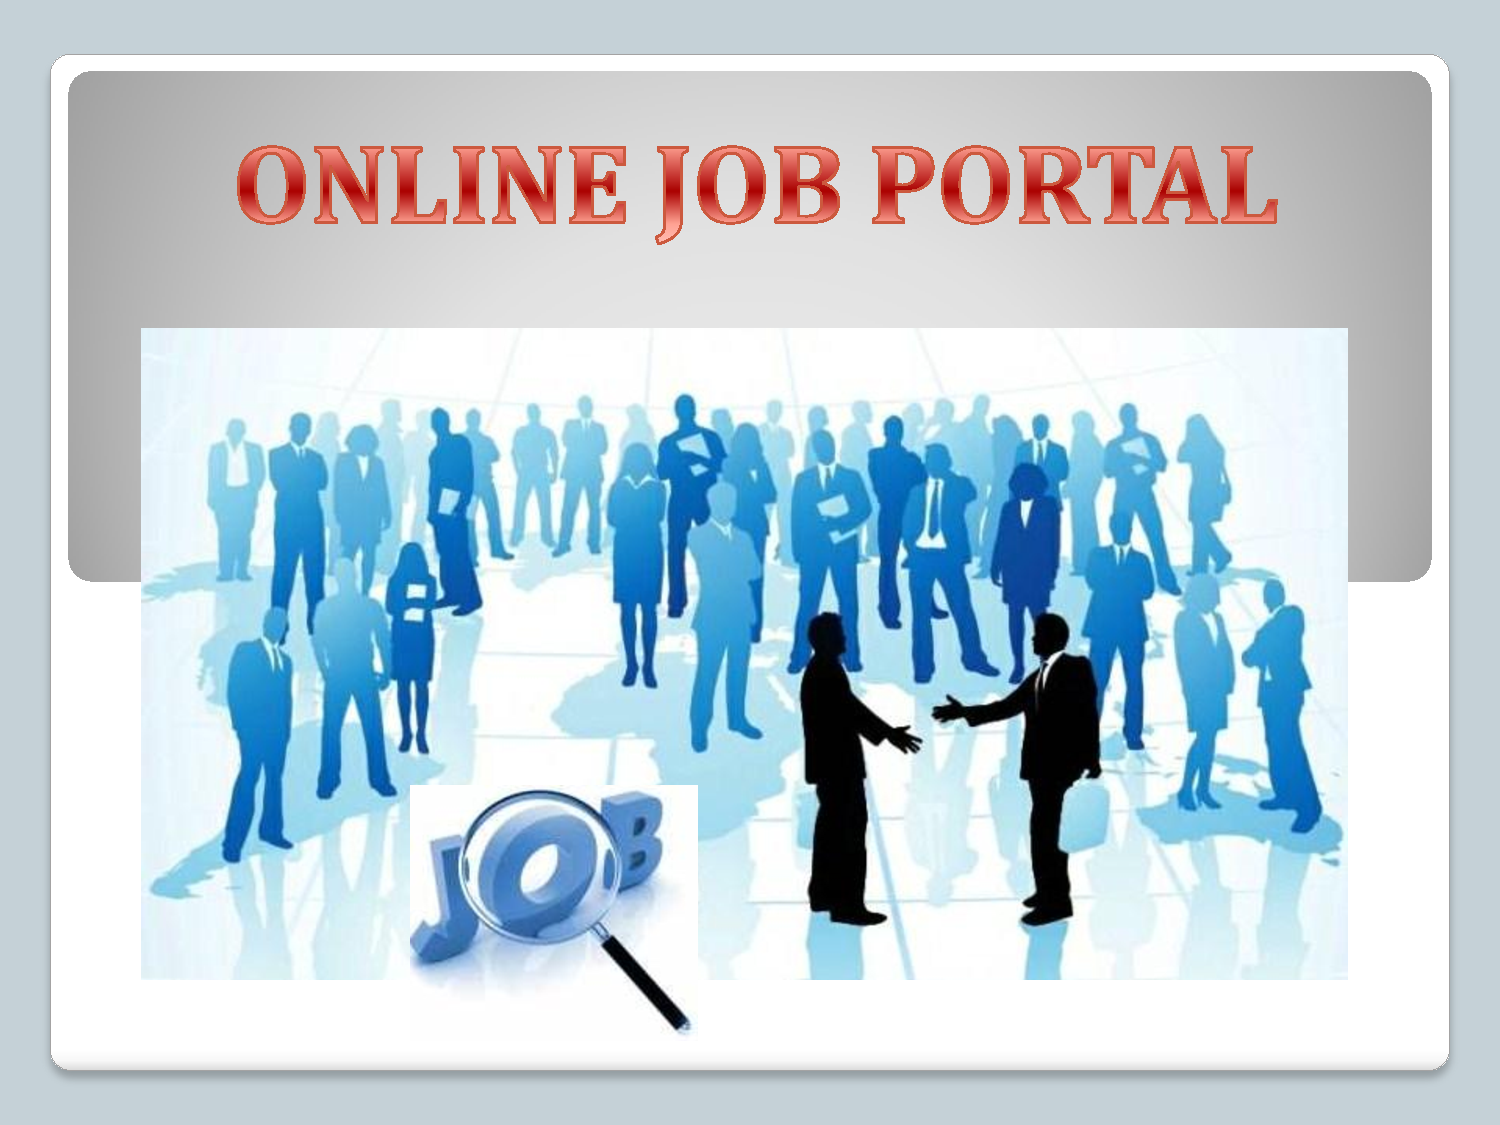 looking for a job dream job n job portal marketplace looking for a job dream job